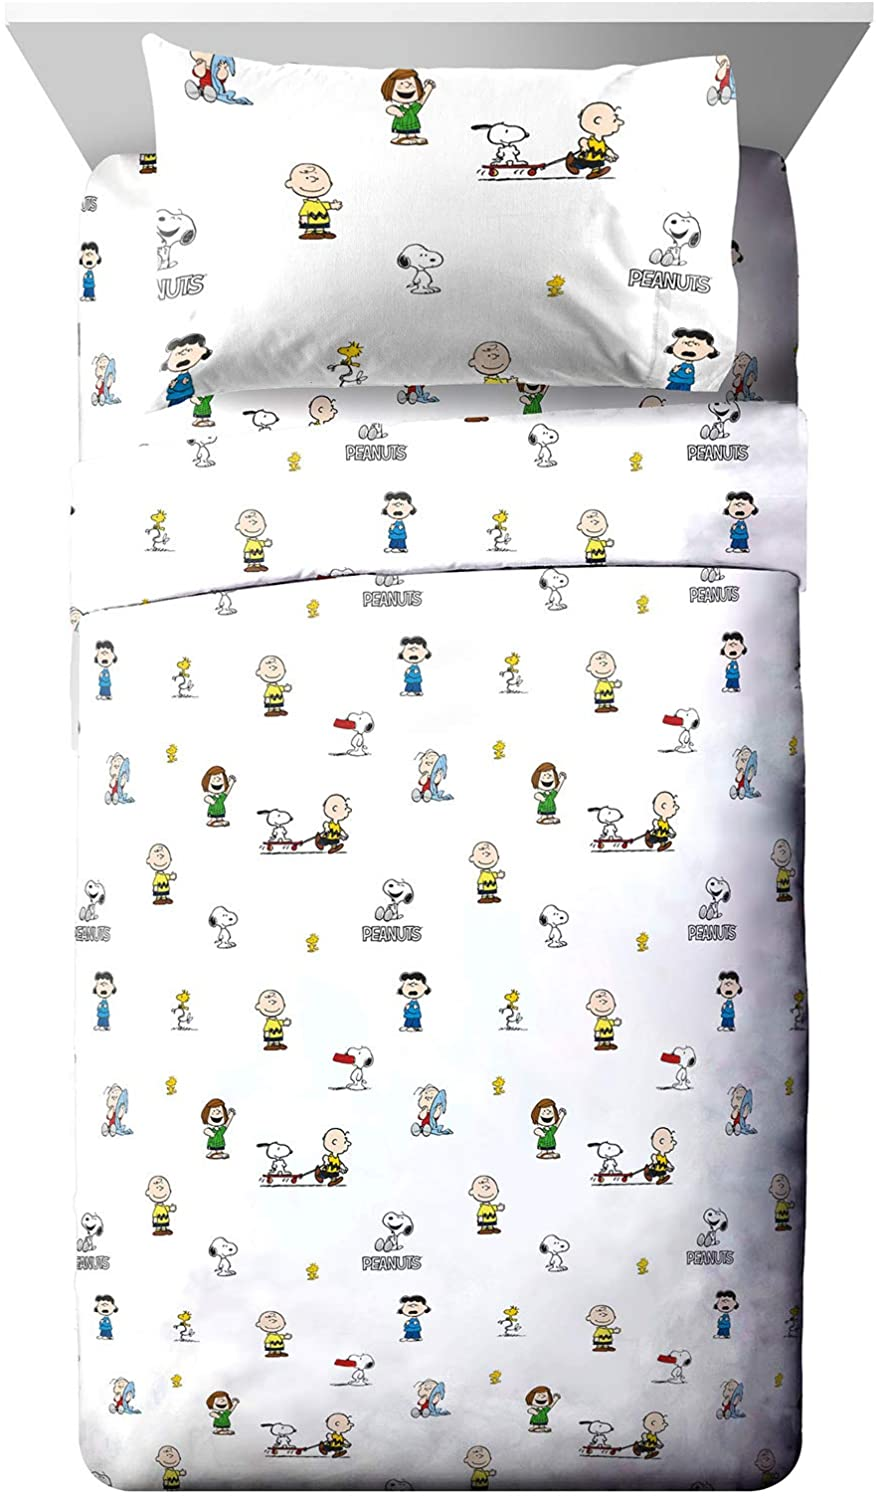 Jay Franco Peanuts Best Friends Twin Sheet Set - 3 Piece Set Super Soft and Cozy Kid's Bedding Features Snoopy & Charlie Brown - Fade Resistant Microfiber Sheets (Official Peanuts Product)